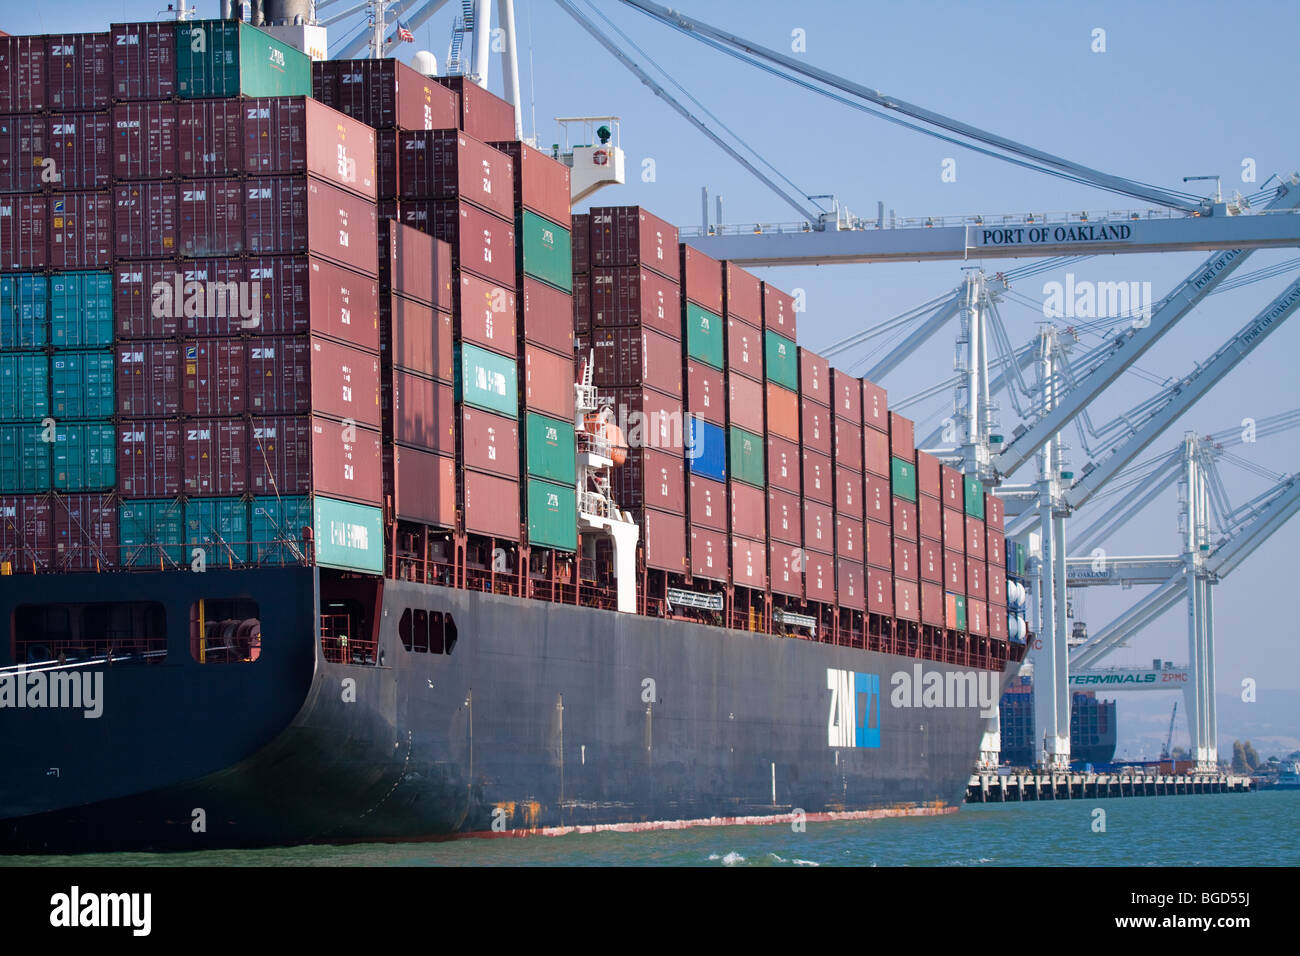 Cargo Container Ship Loaded with Portainers at Port of Oakland Docks - Stock Image